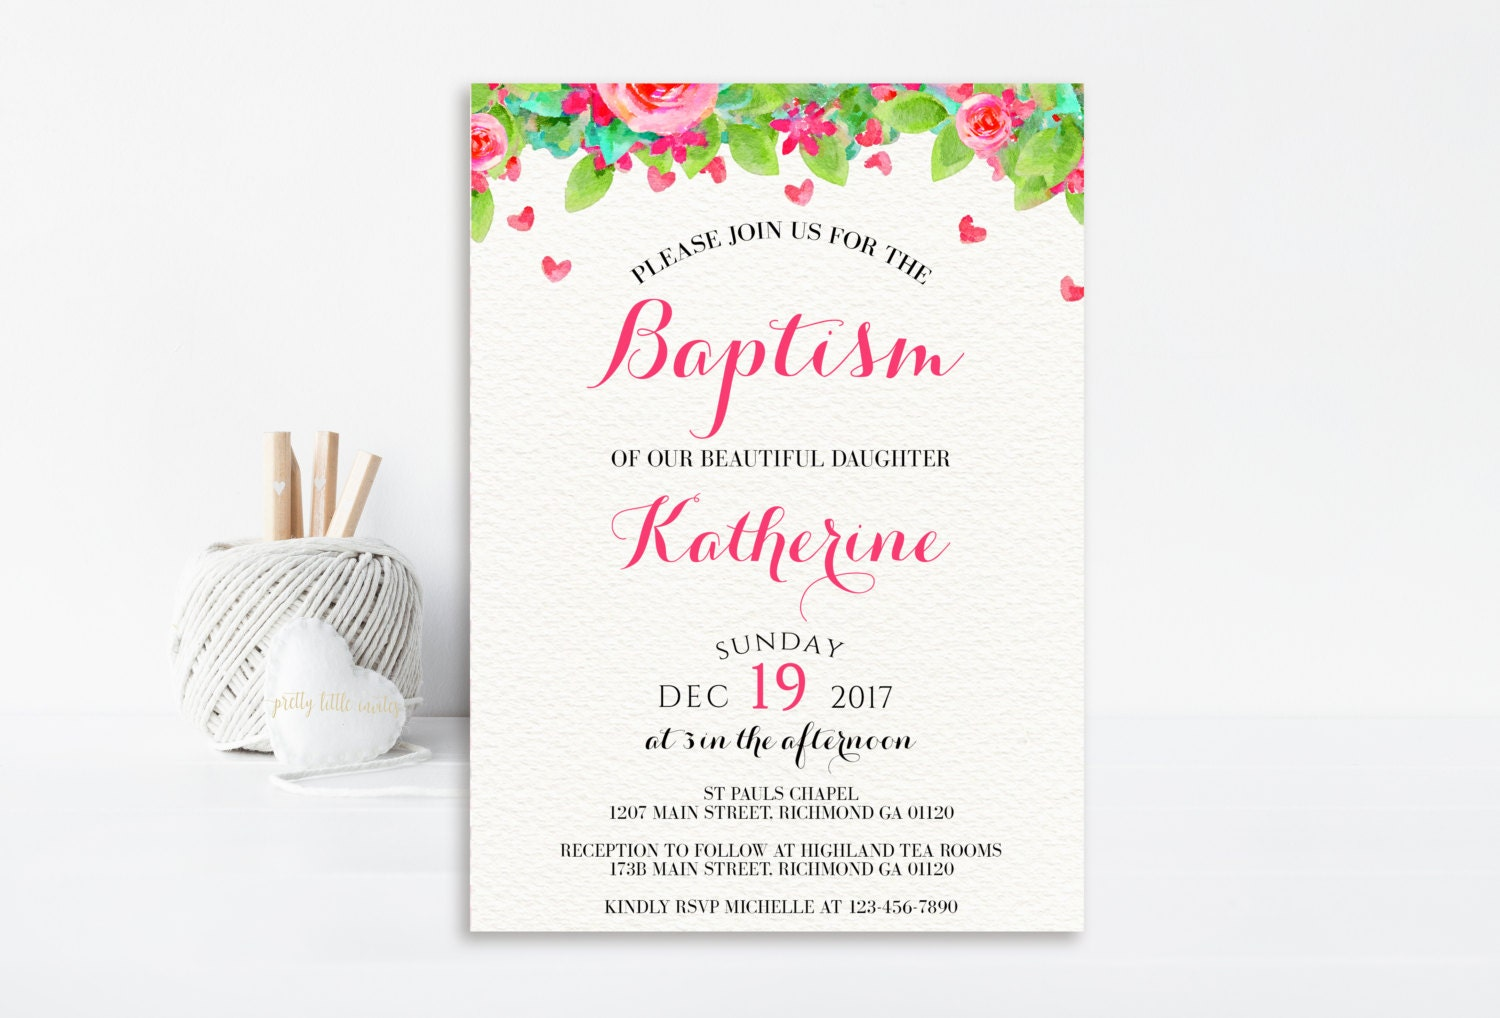 Floral baptism invitation christening invitation floral baptism floral baptism invitation christening invitation floral baptism printable invitation first communion inviation baby girl baptism pink stopboris Images